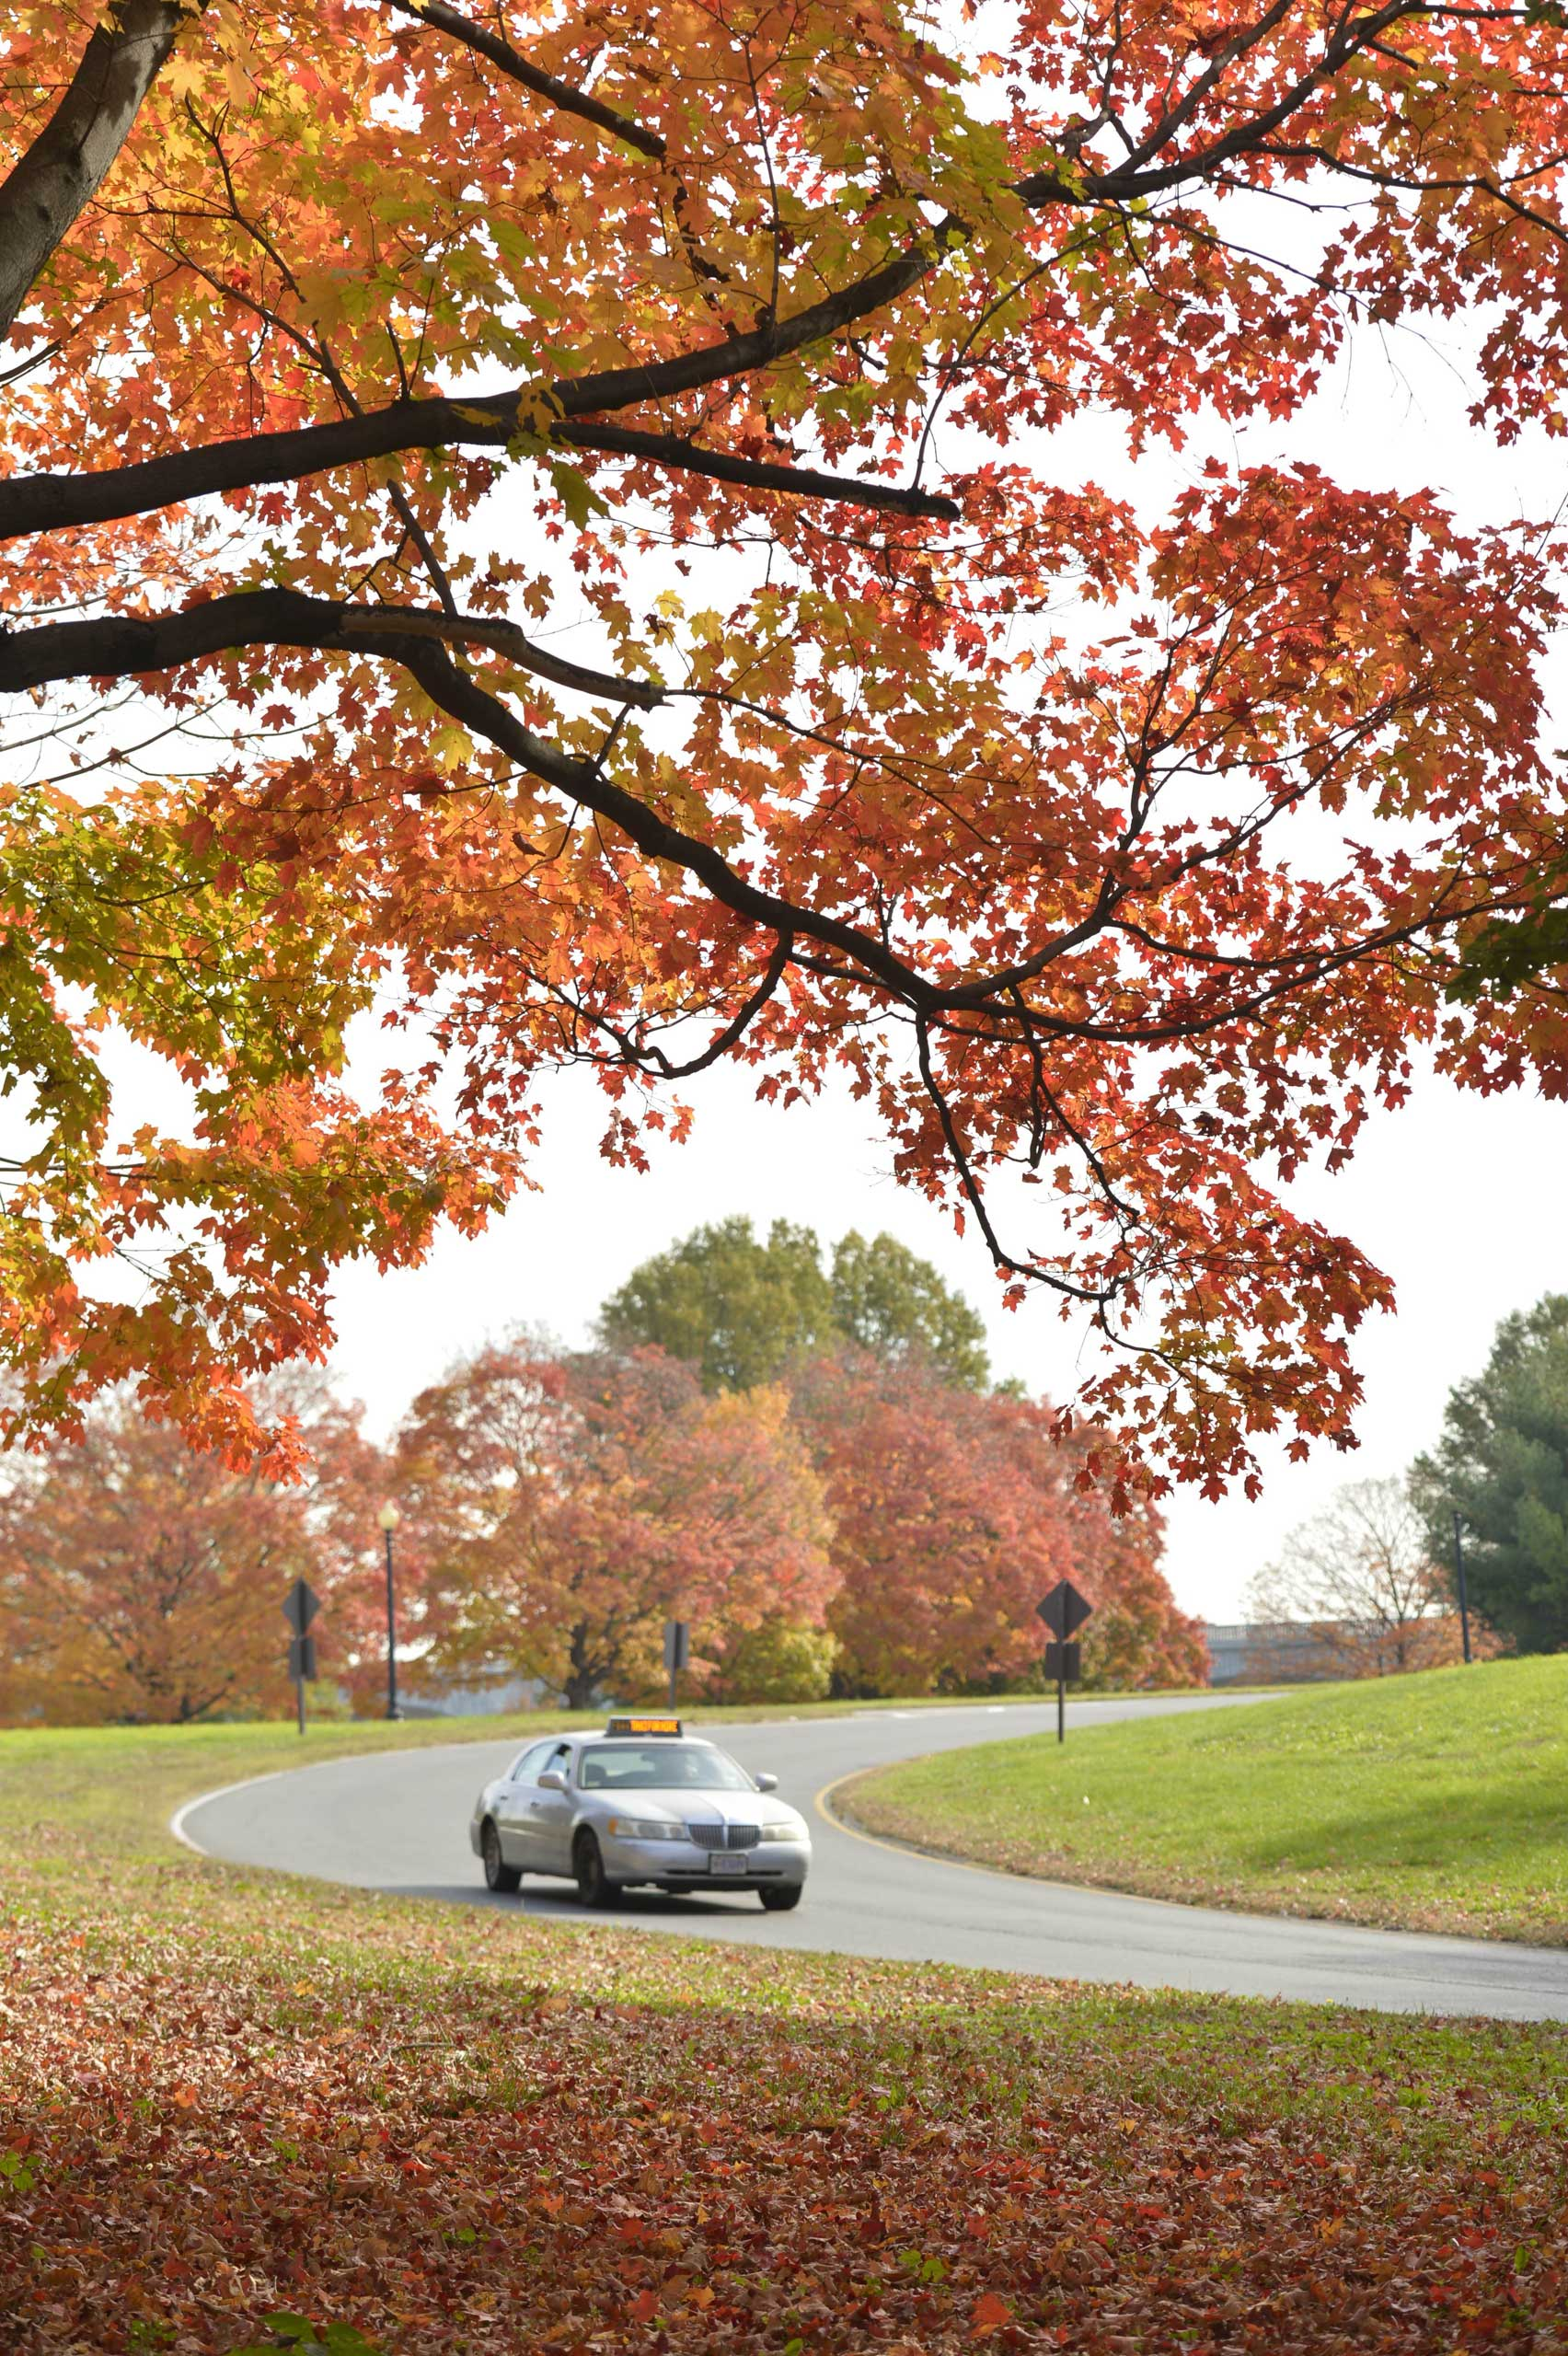 A car runs past fall foliage in Washington D.C., capital of the United States, on Oct. 28, 2014.